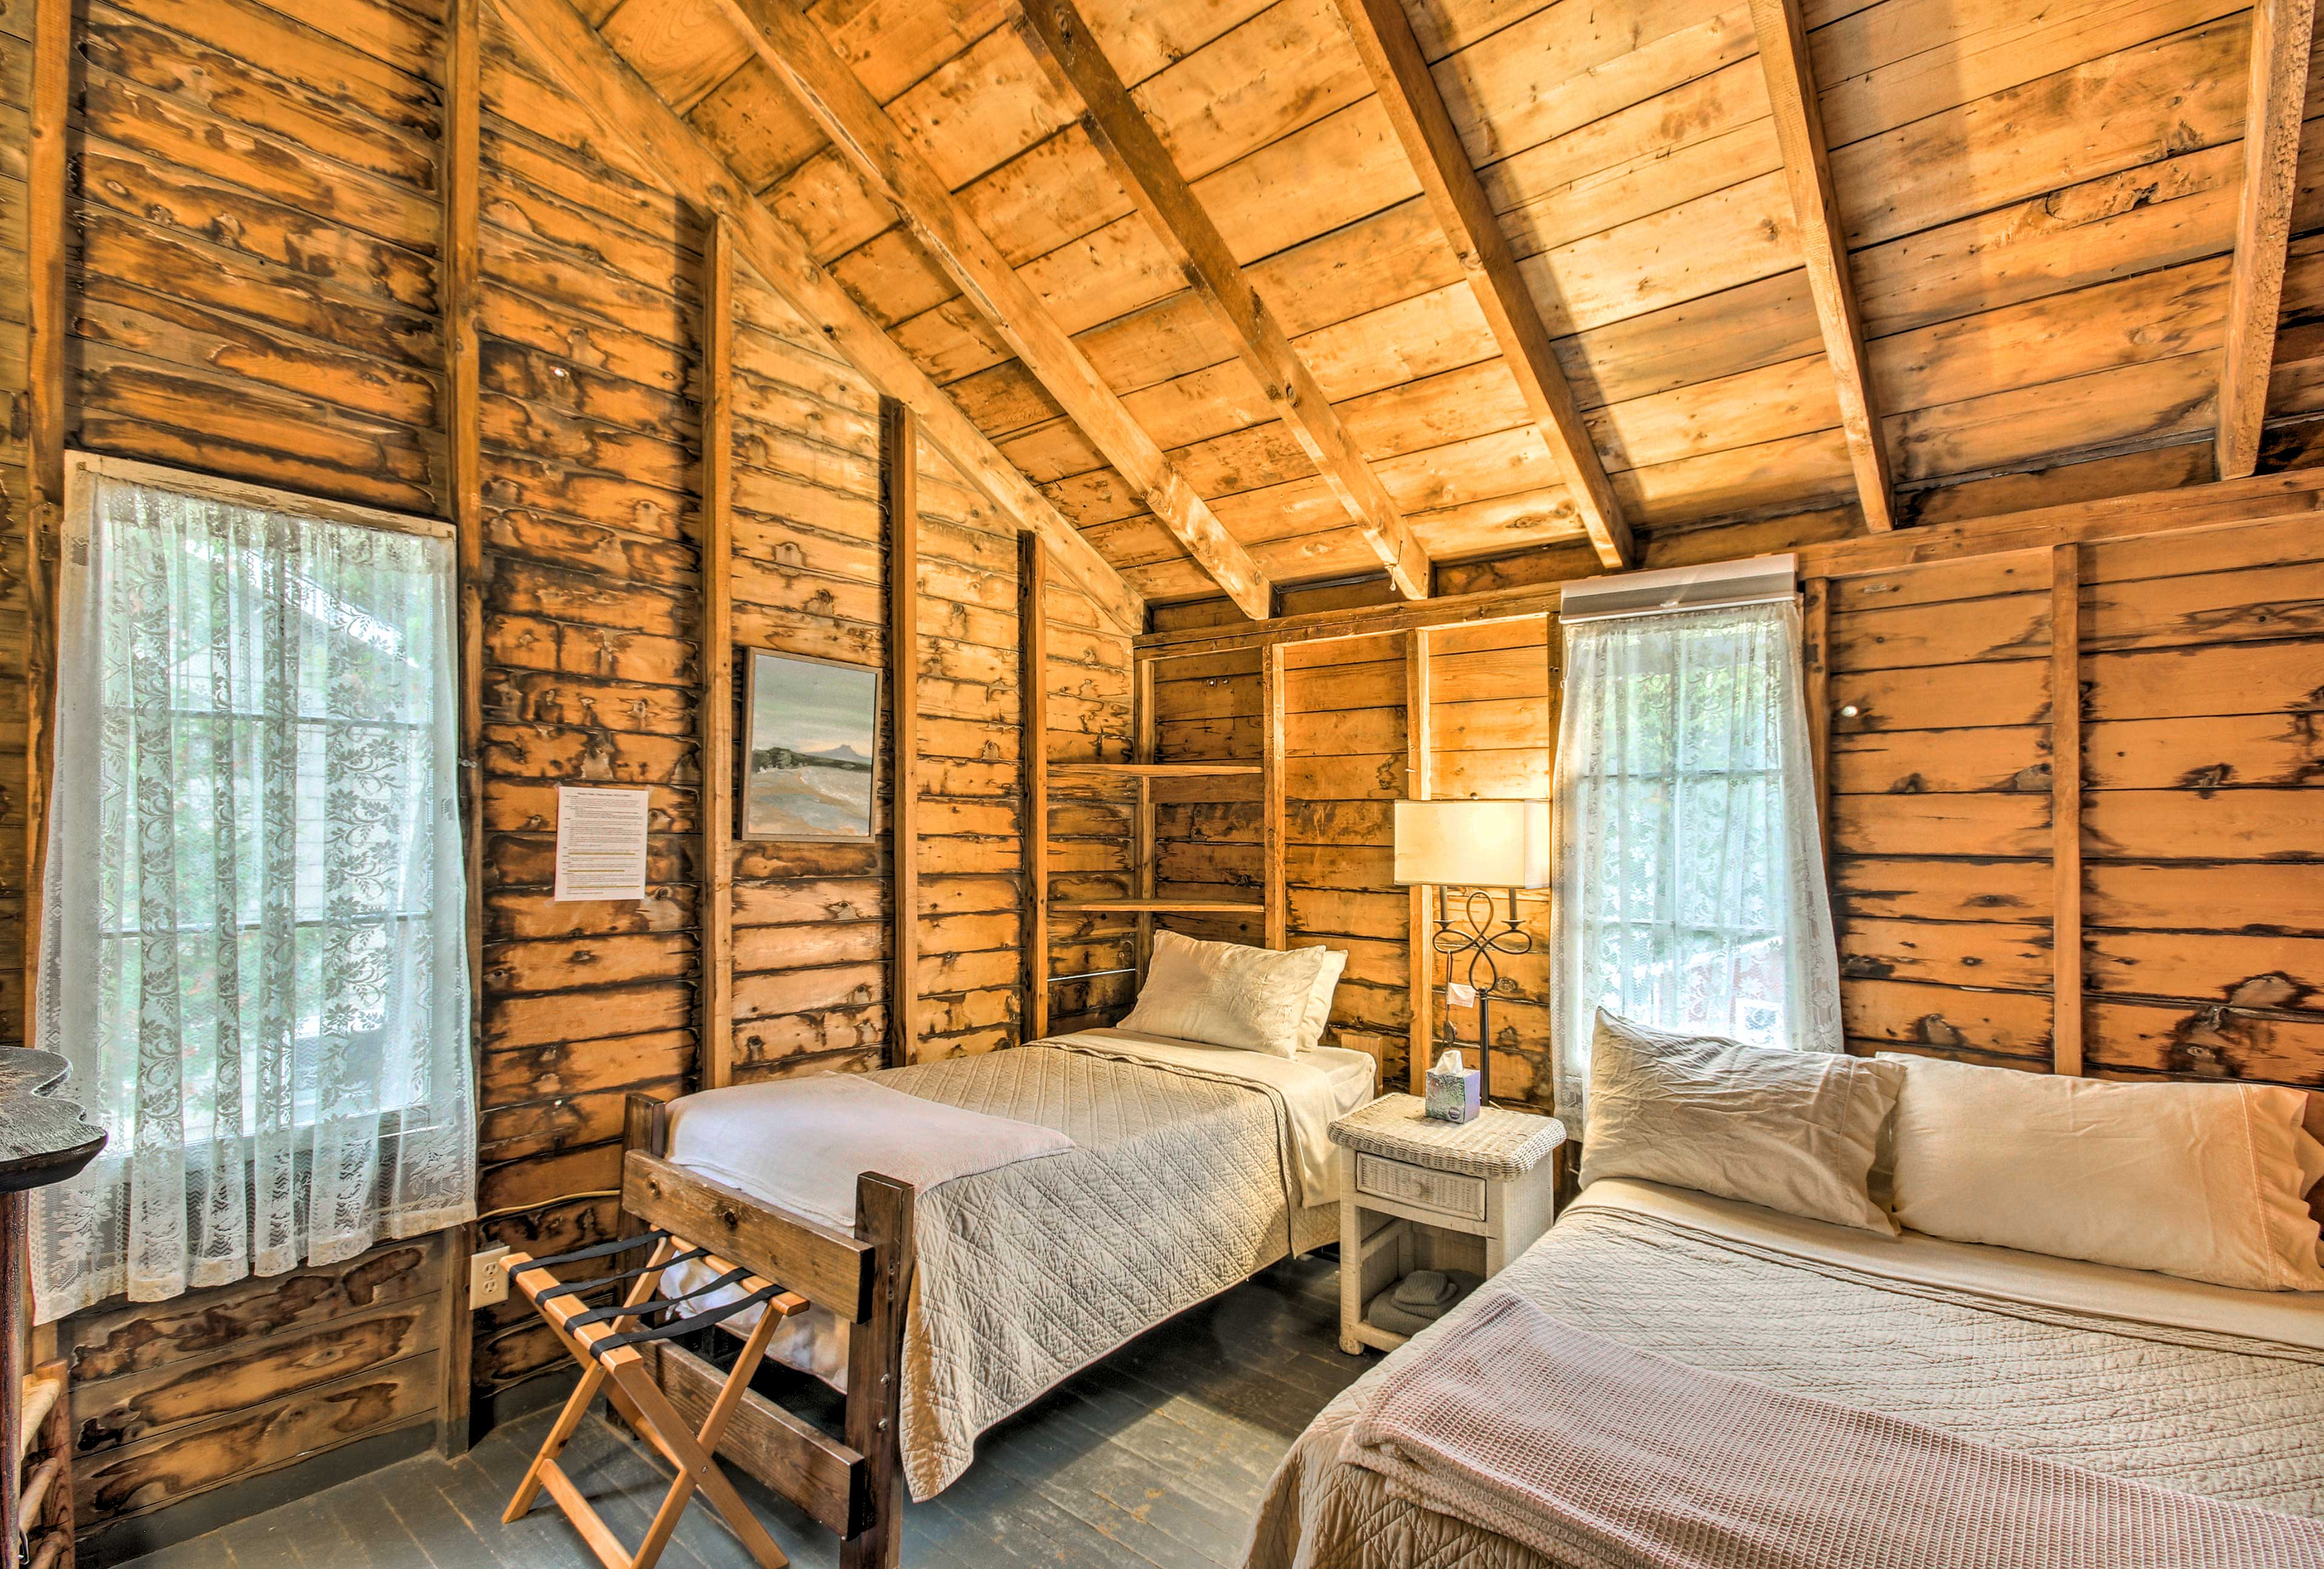 Up to 3 travelers can become roommates in the 3rd upstairs bedroom.